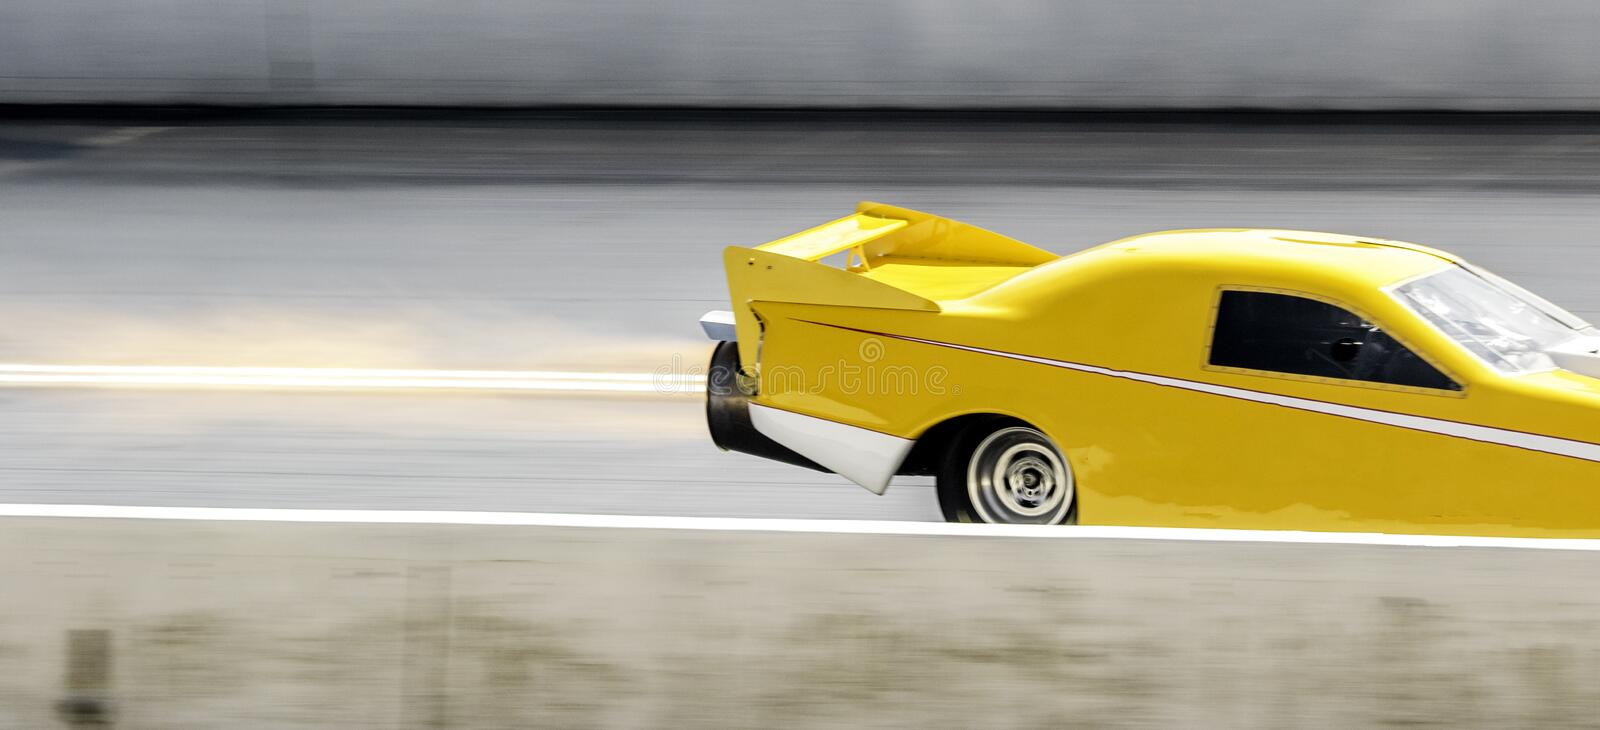 dragster image stock